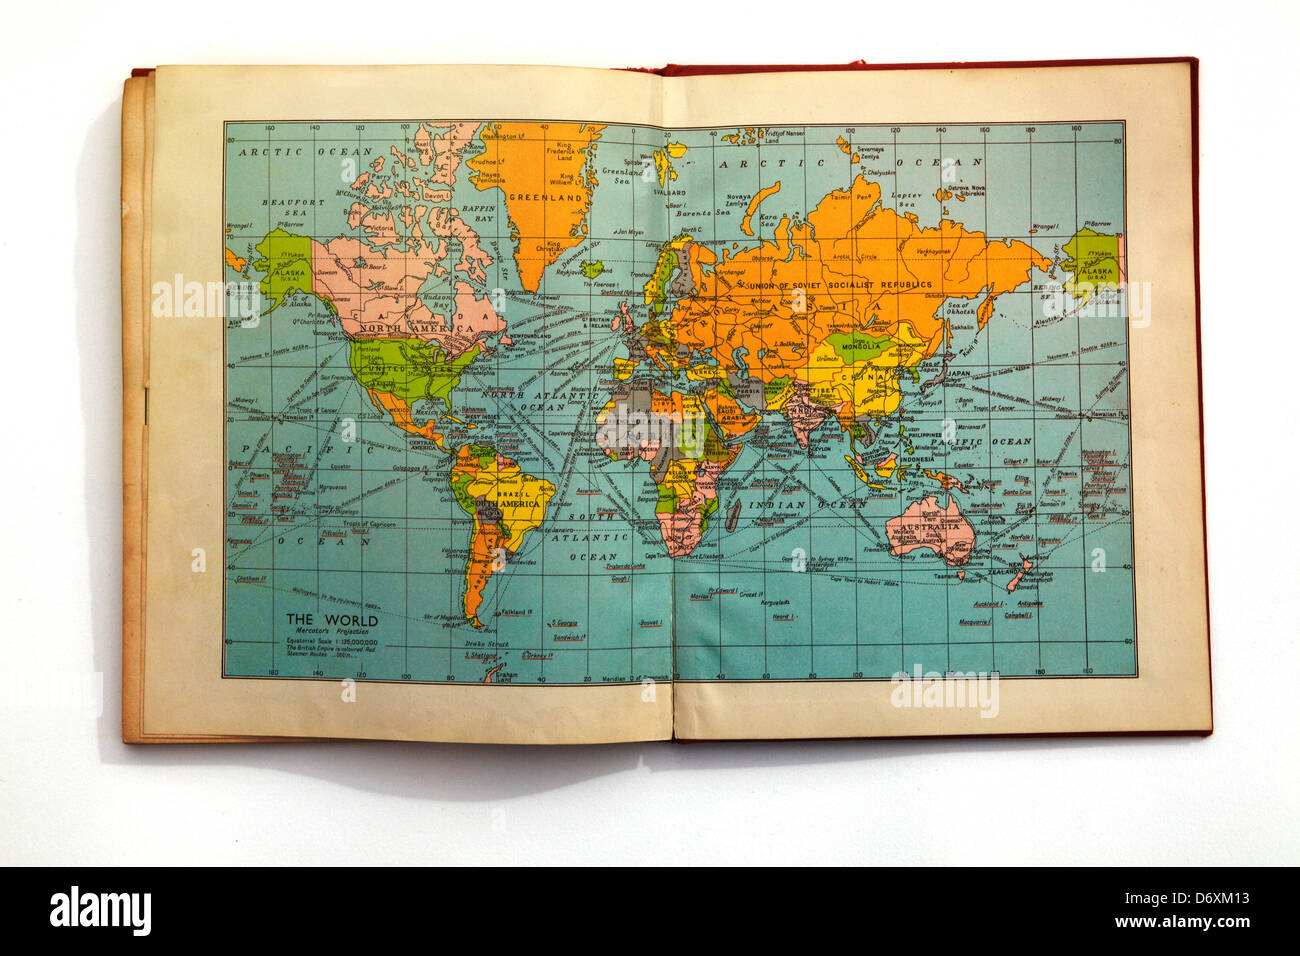 World atlas book stock photos world atlas book stock images alamy map of the world in an old book stock image gumiabroncs Image collections